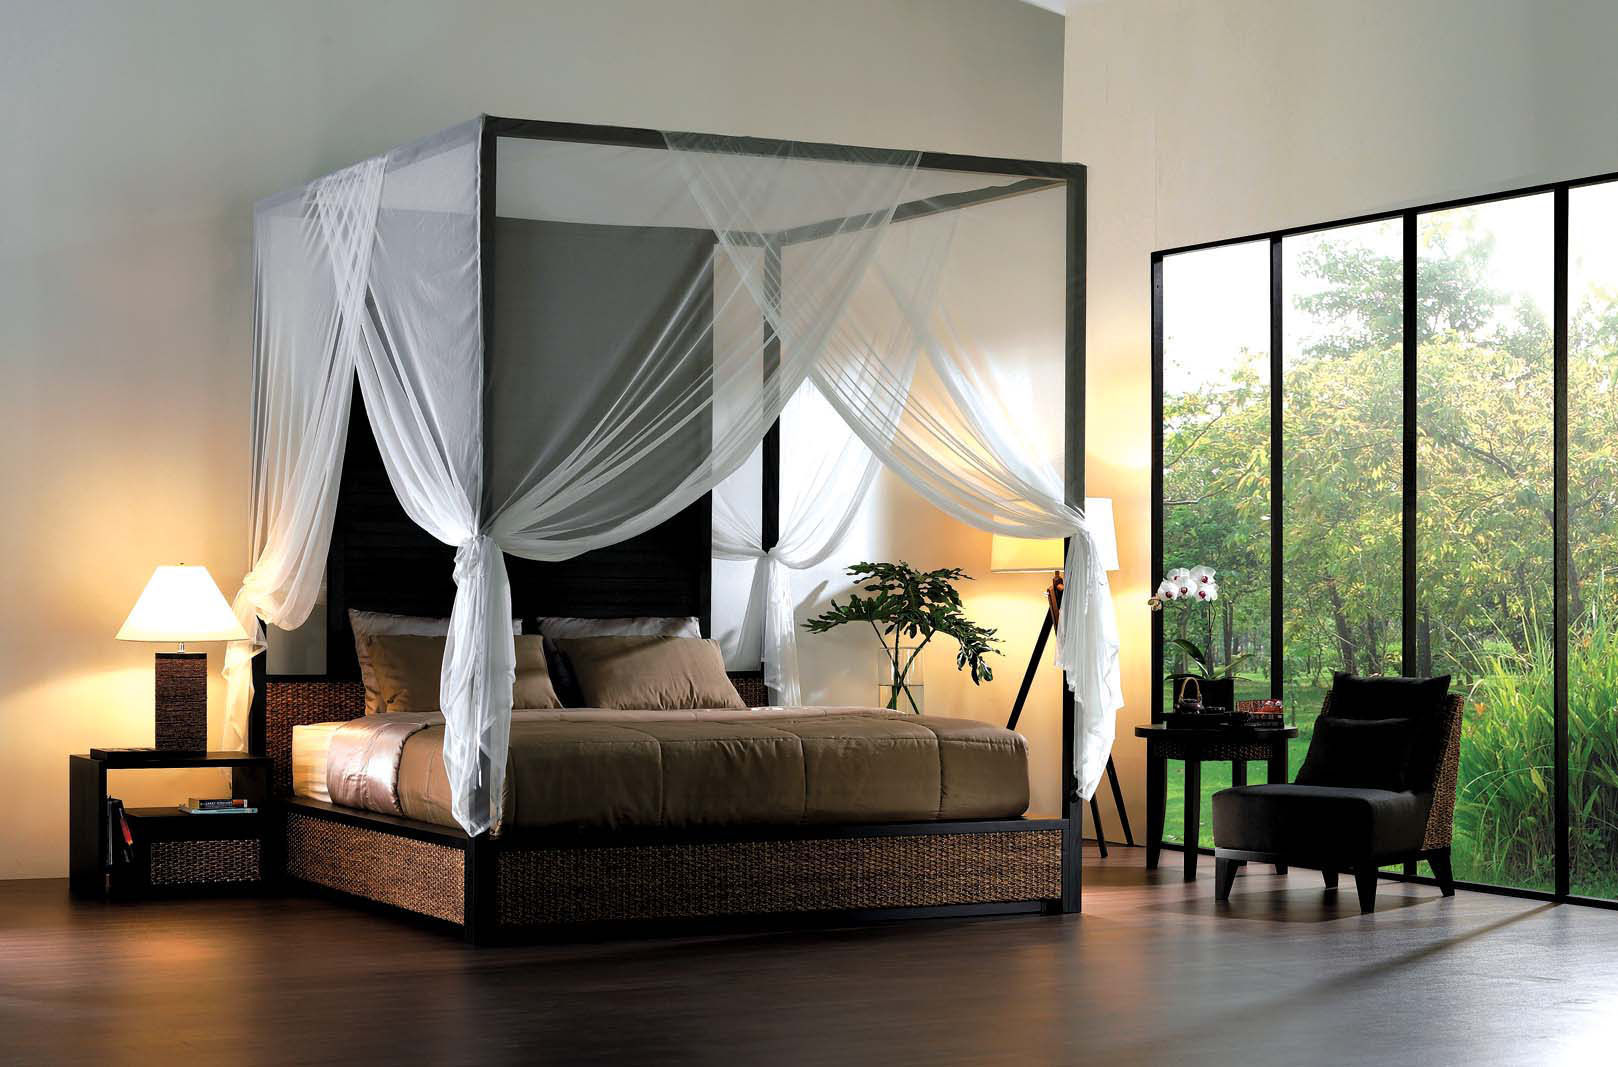 Bedroom Elegant And Traditional Style Of Canopy Bedroom Sets pertaining to 15 Awesome Tricks of How to Improve Modern Canopy Bedroom Sets